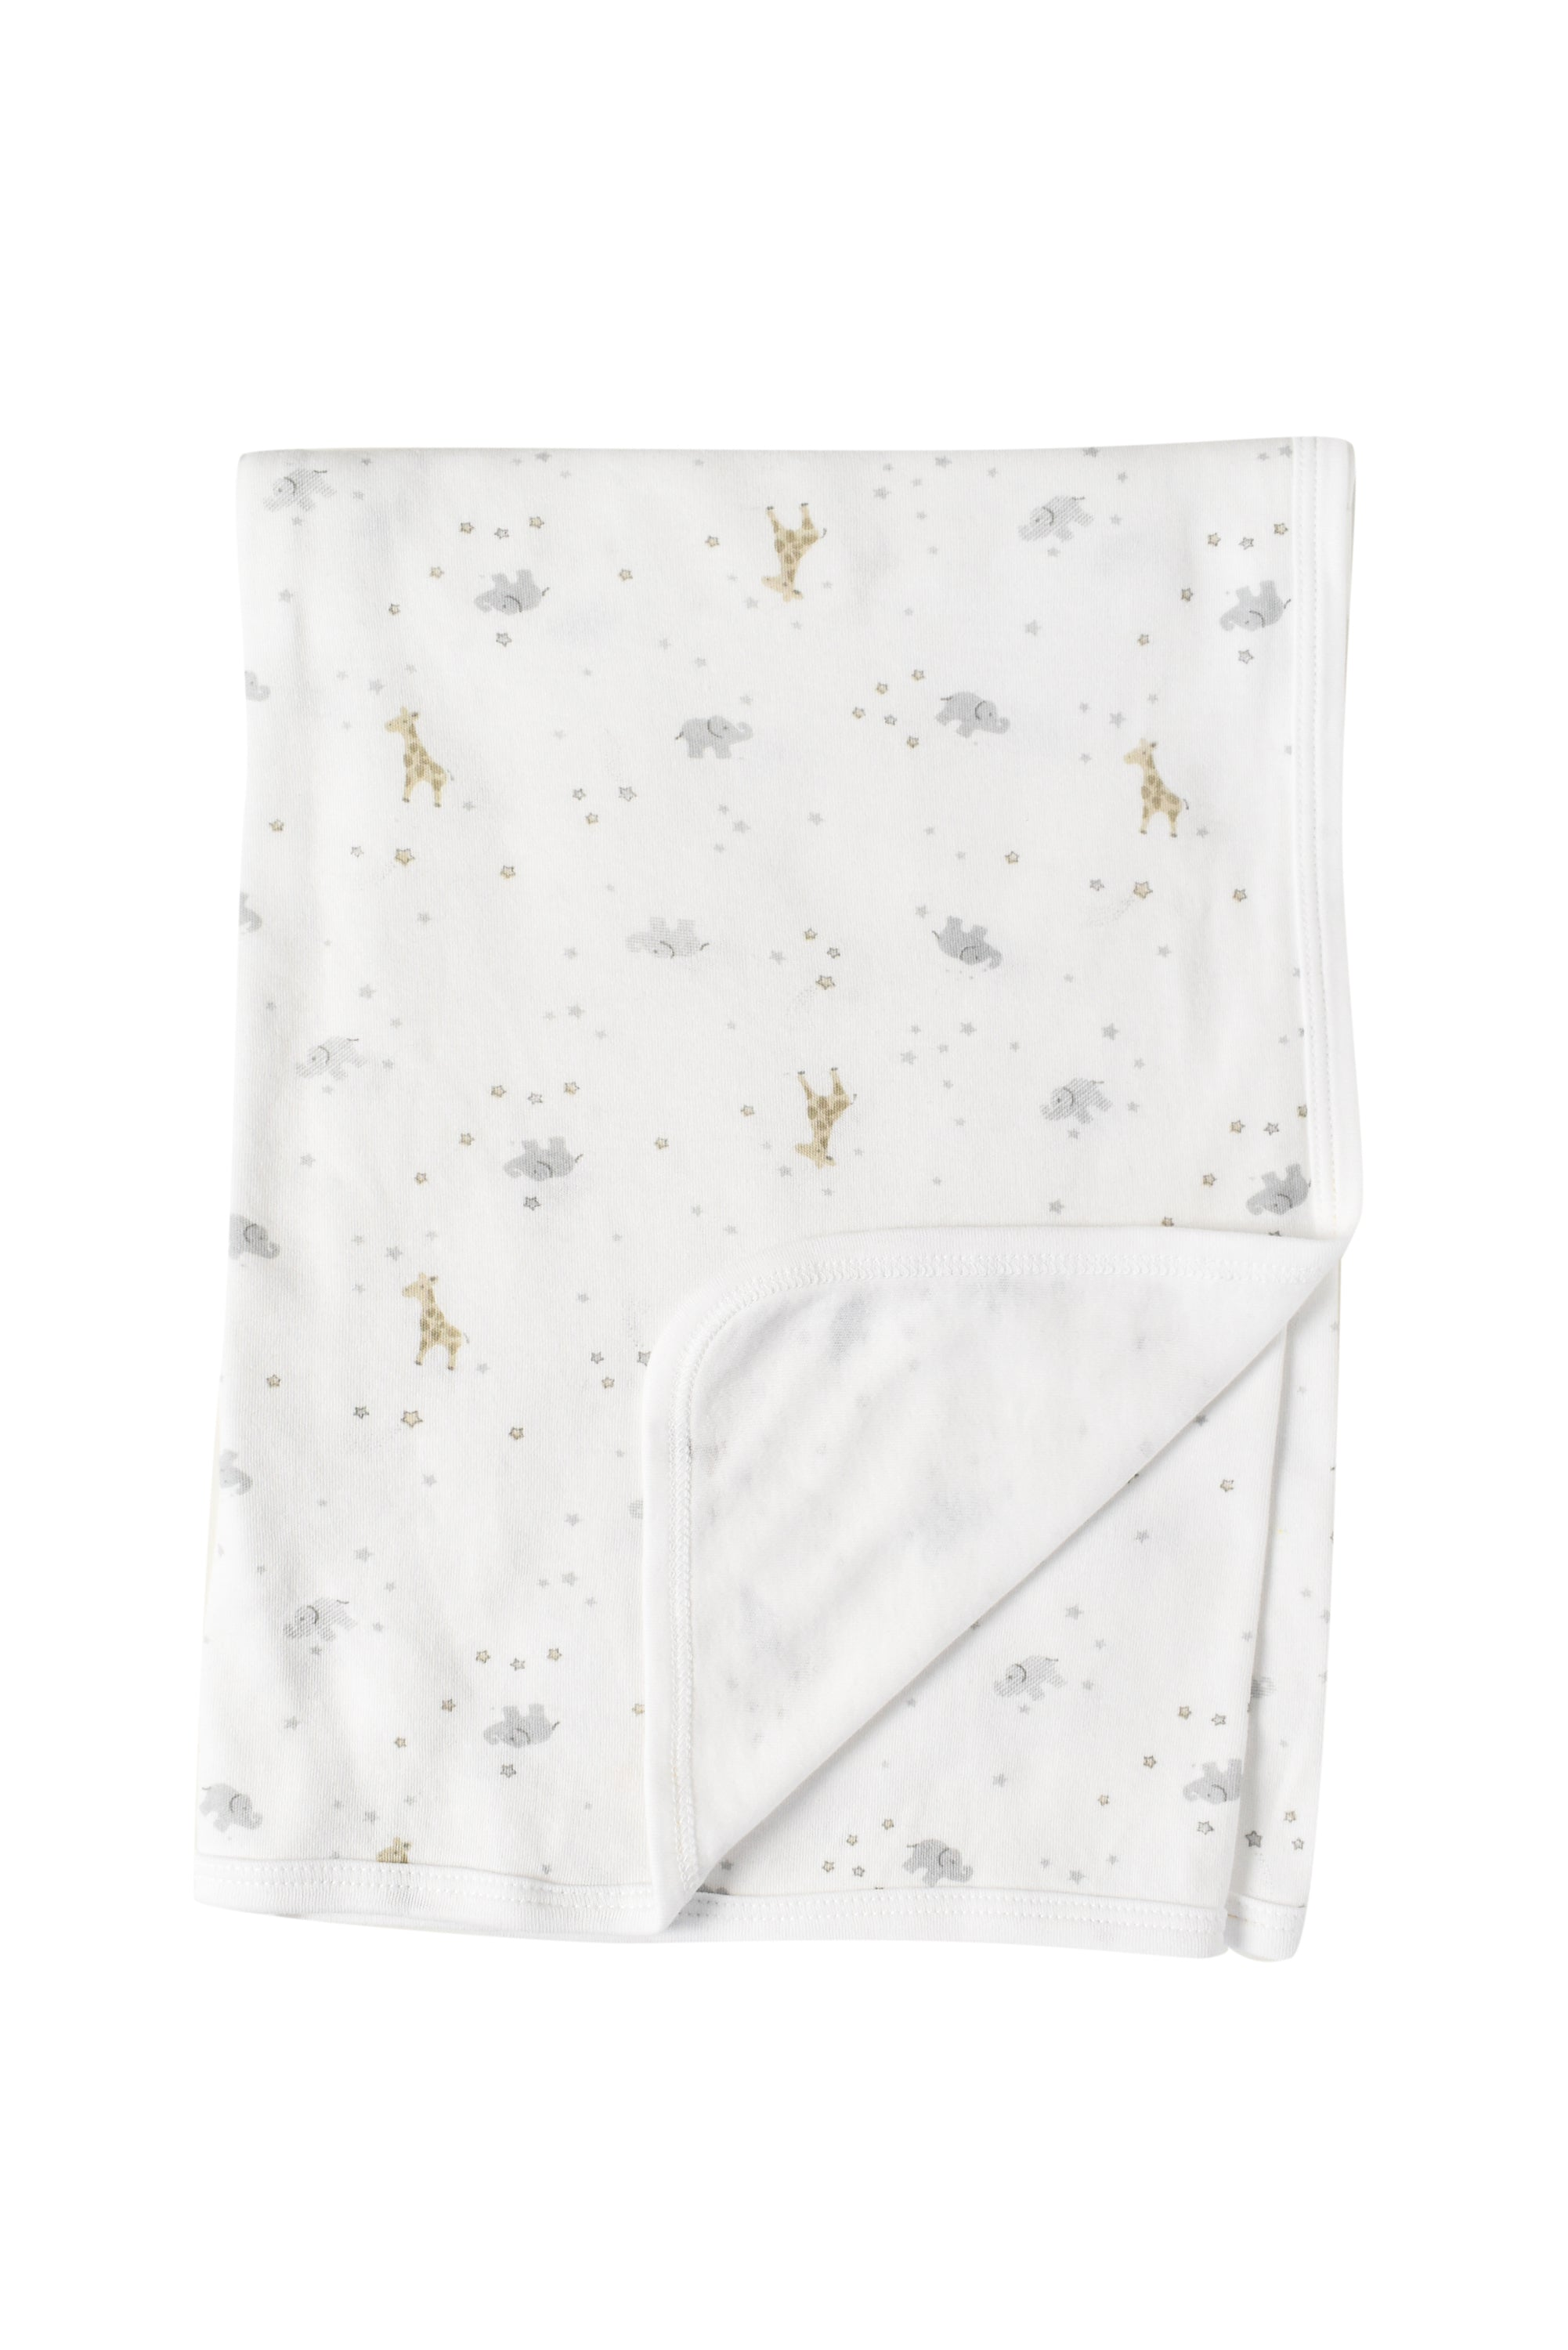 10011737 The Little White Company Baby ~ Blanket O/S at Retykle